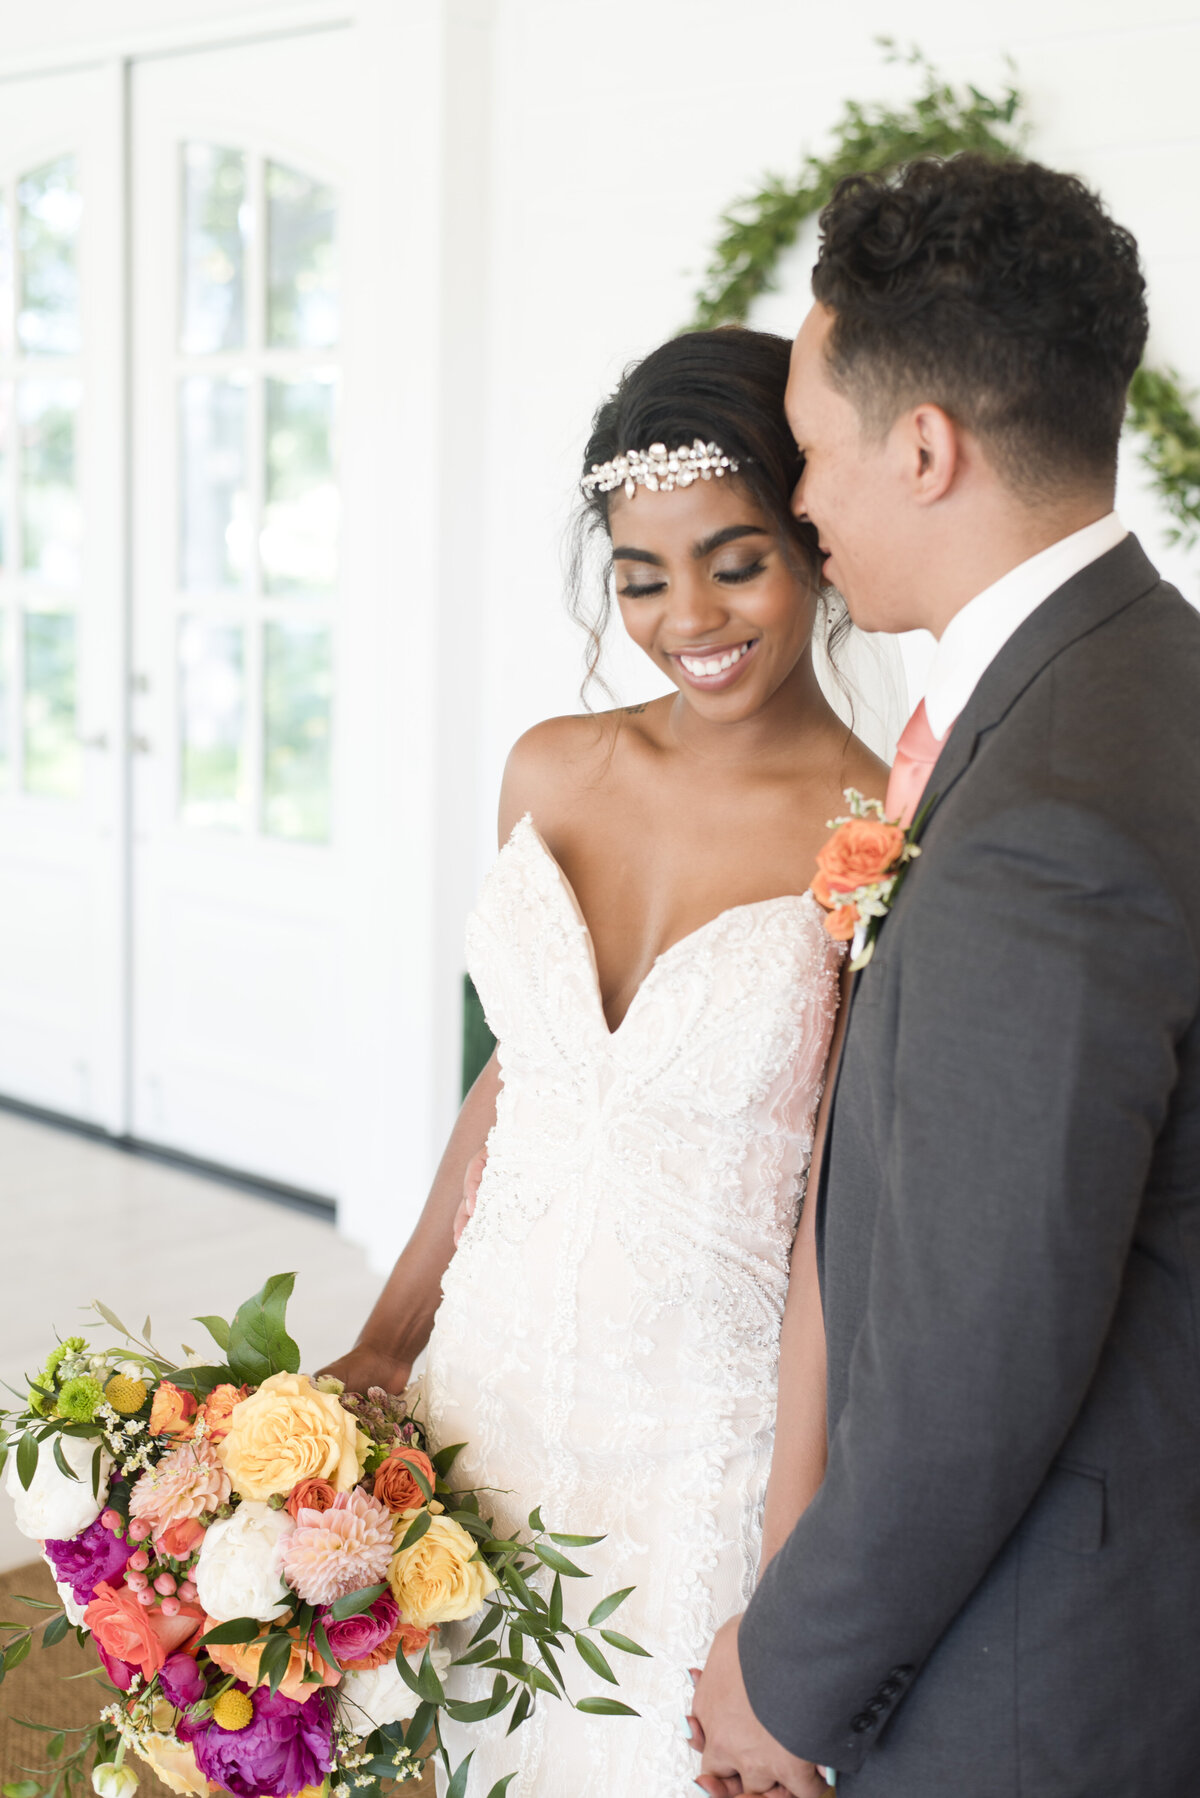 Bride smiling in Fort Worth Wedding venue with colorful bouquet of flowers